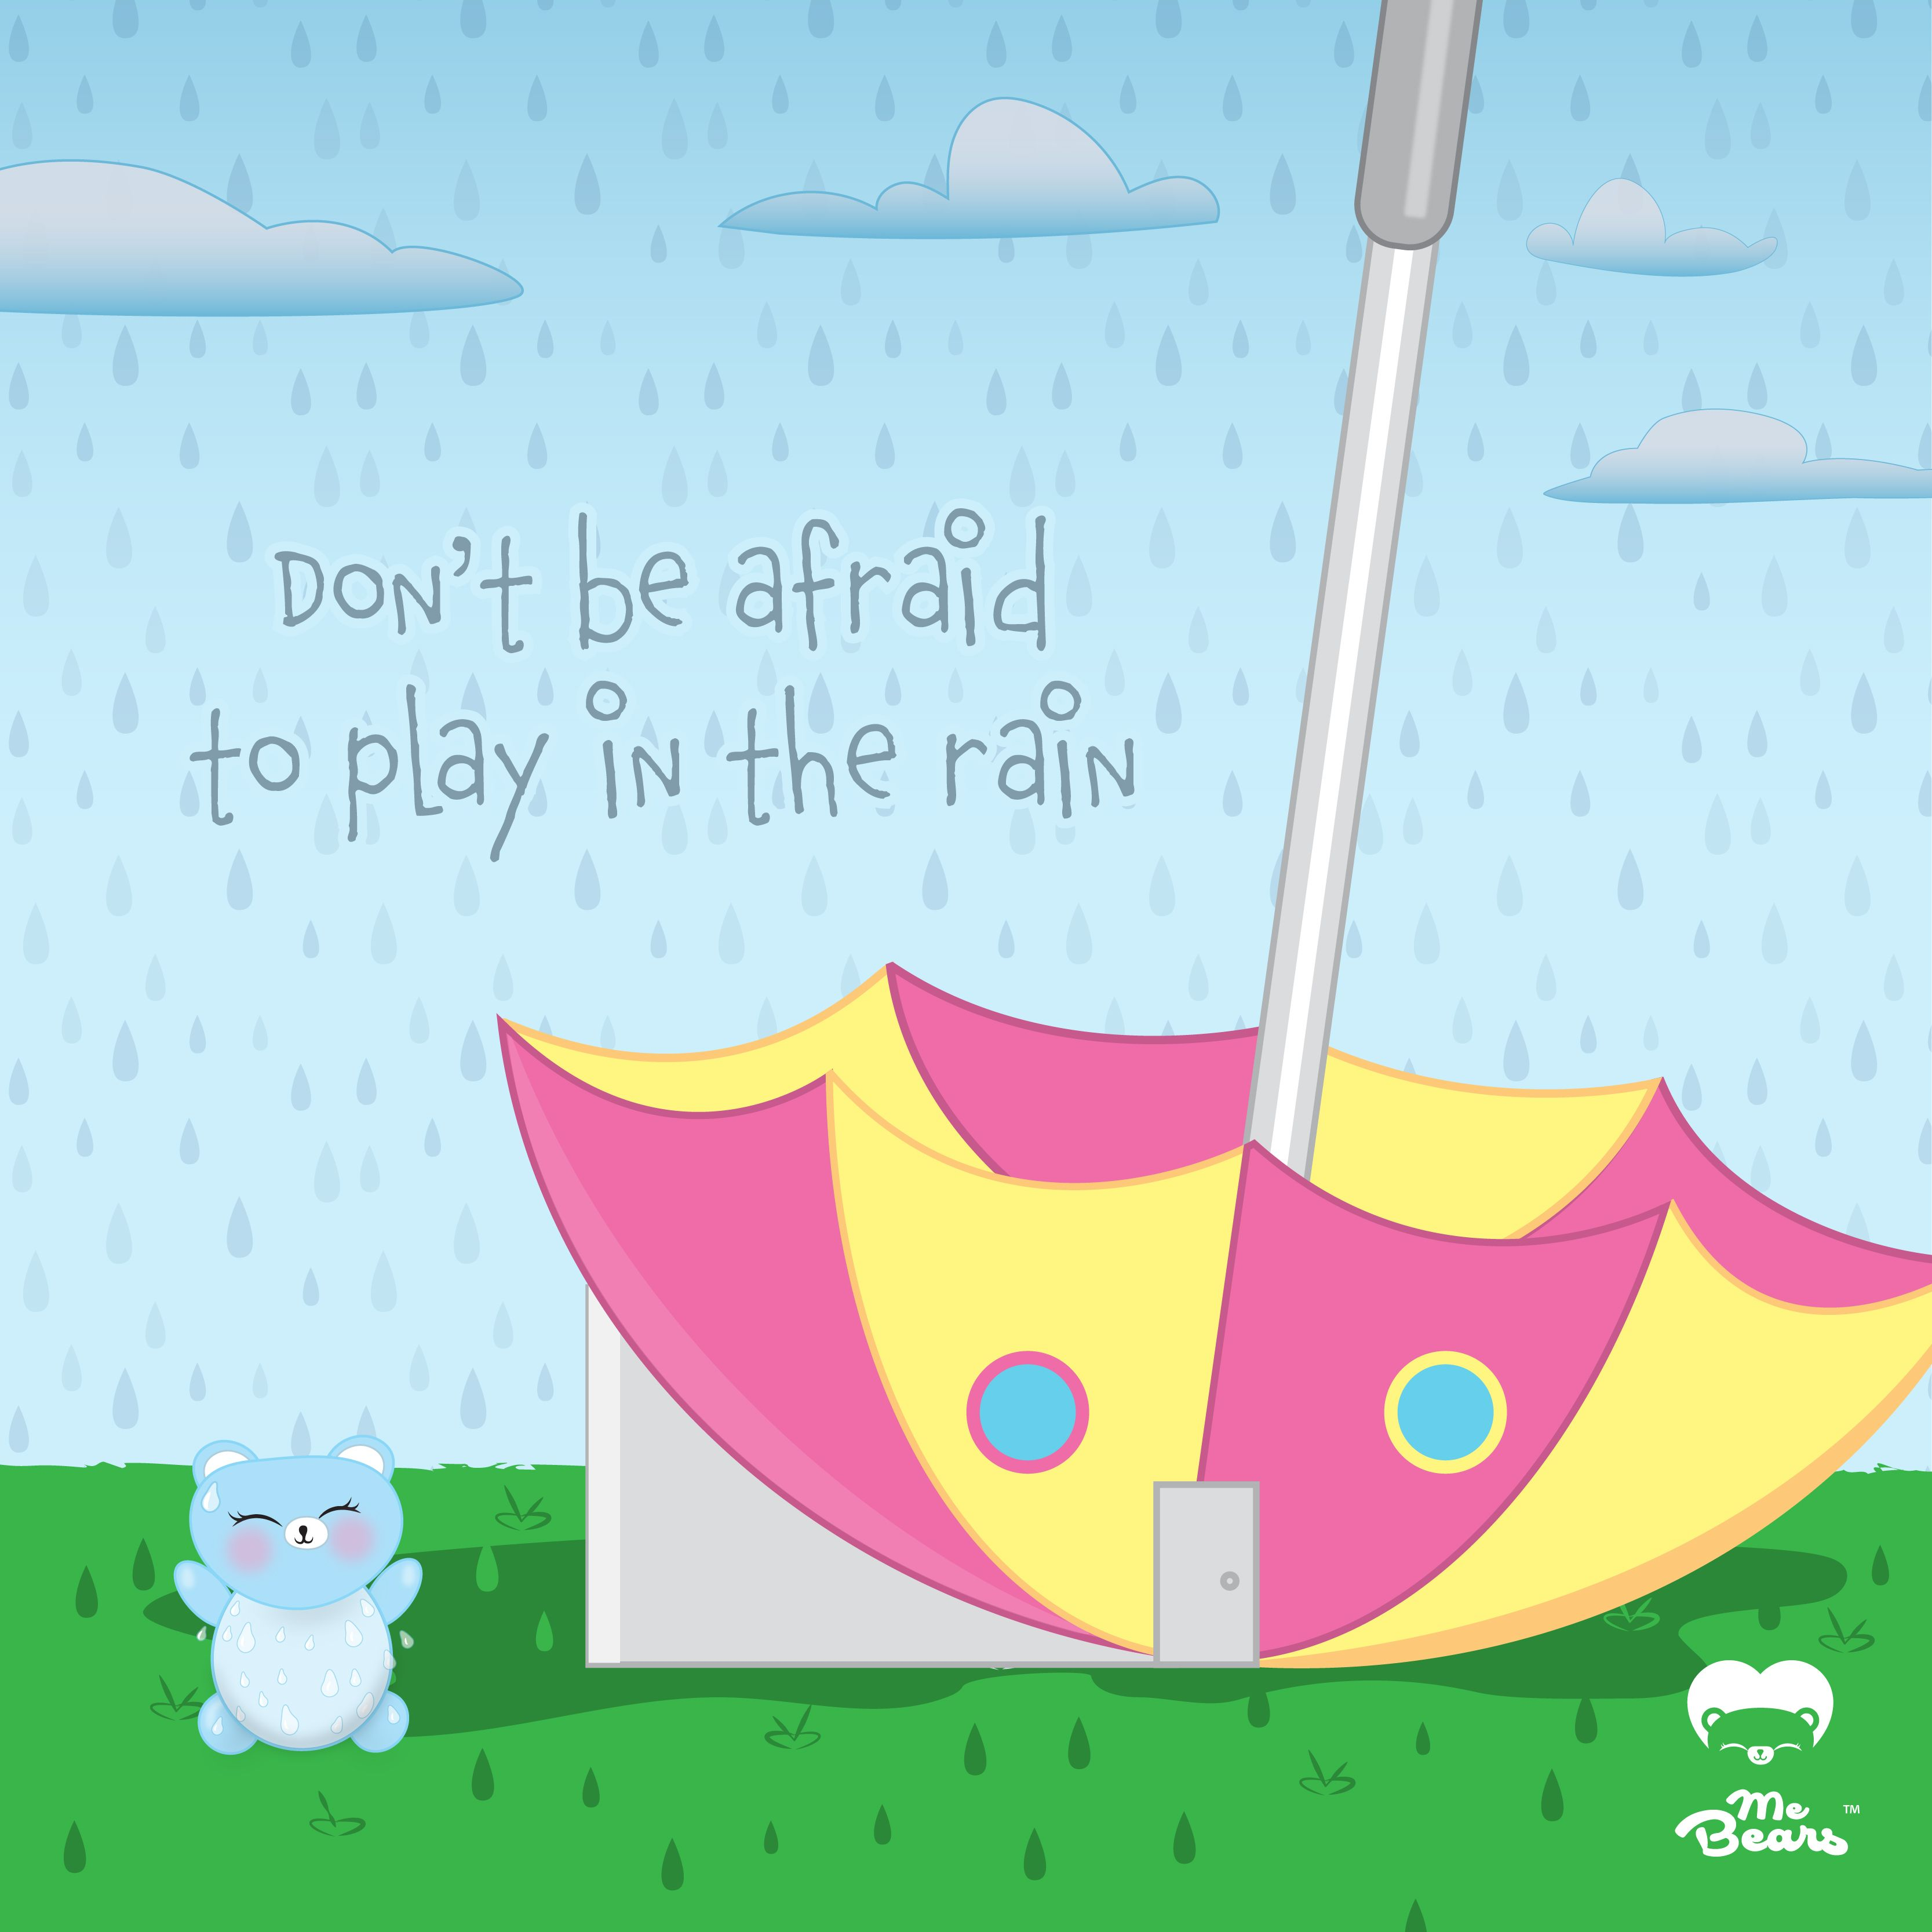 See you soon wearing clipart rainy outfit images banner download When life gives you rainy days, wear boots and jump in ... banner download